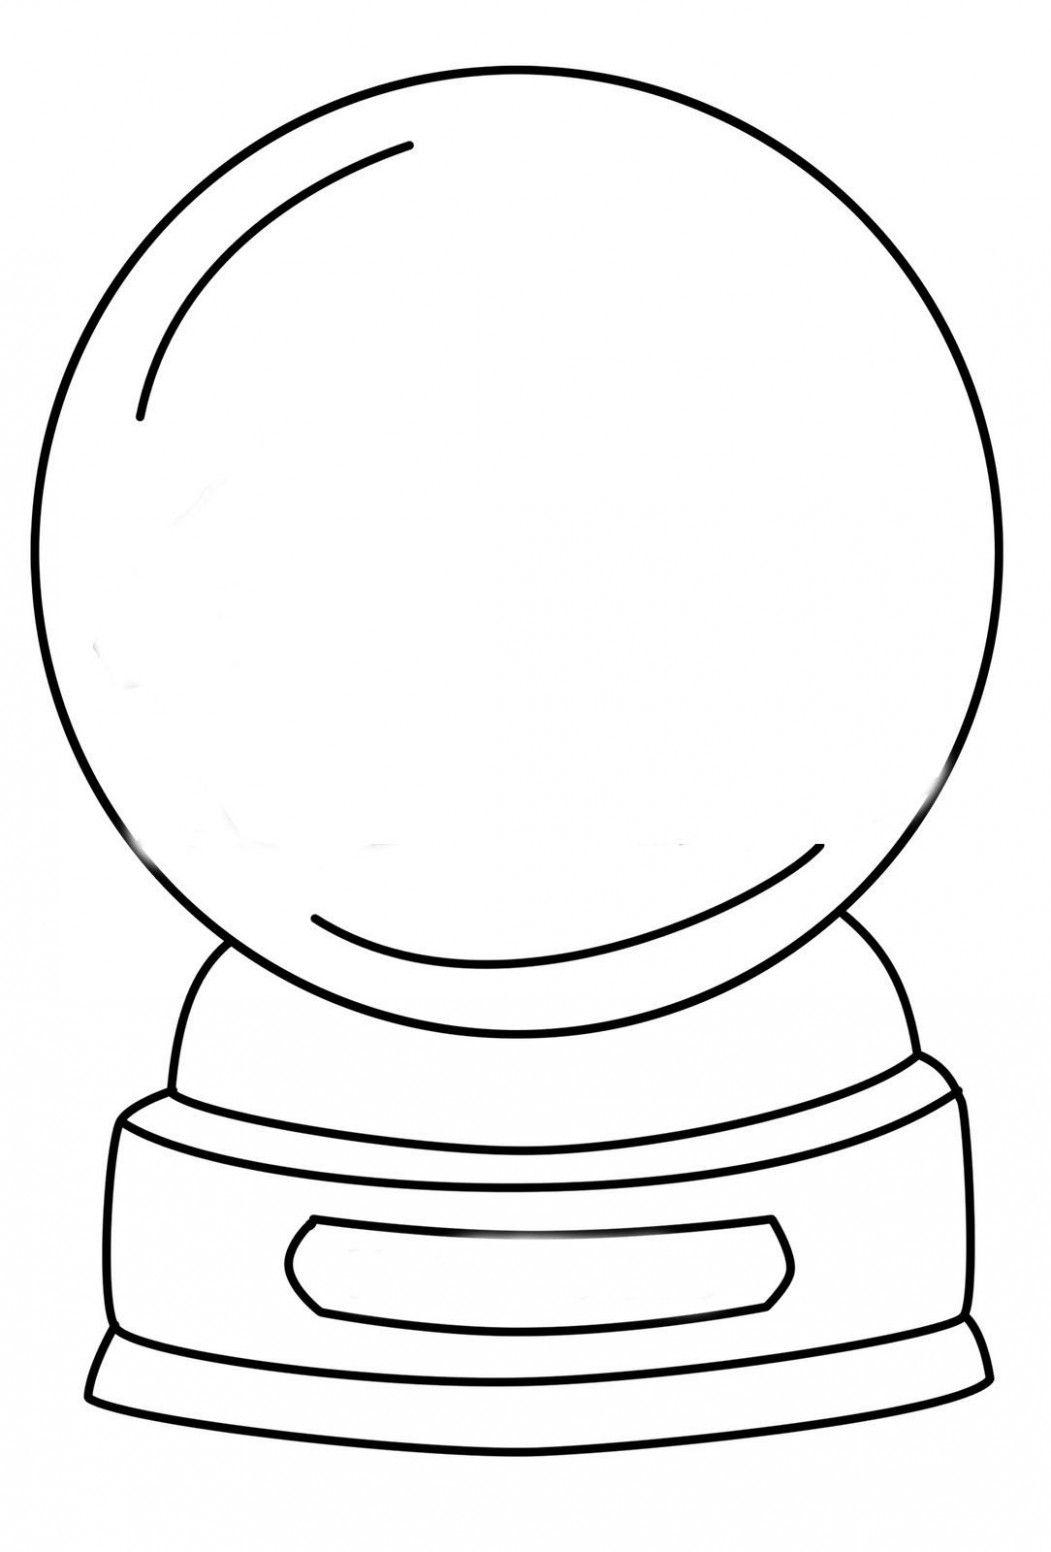 Christmas Globe Coloring Pages Graphic Allowed To Help My Own